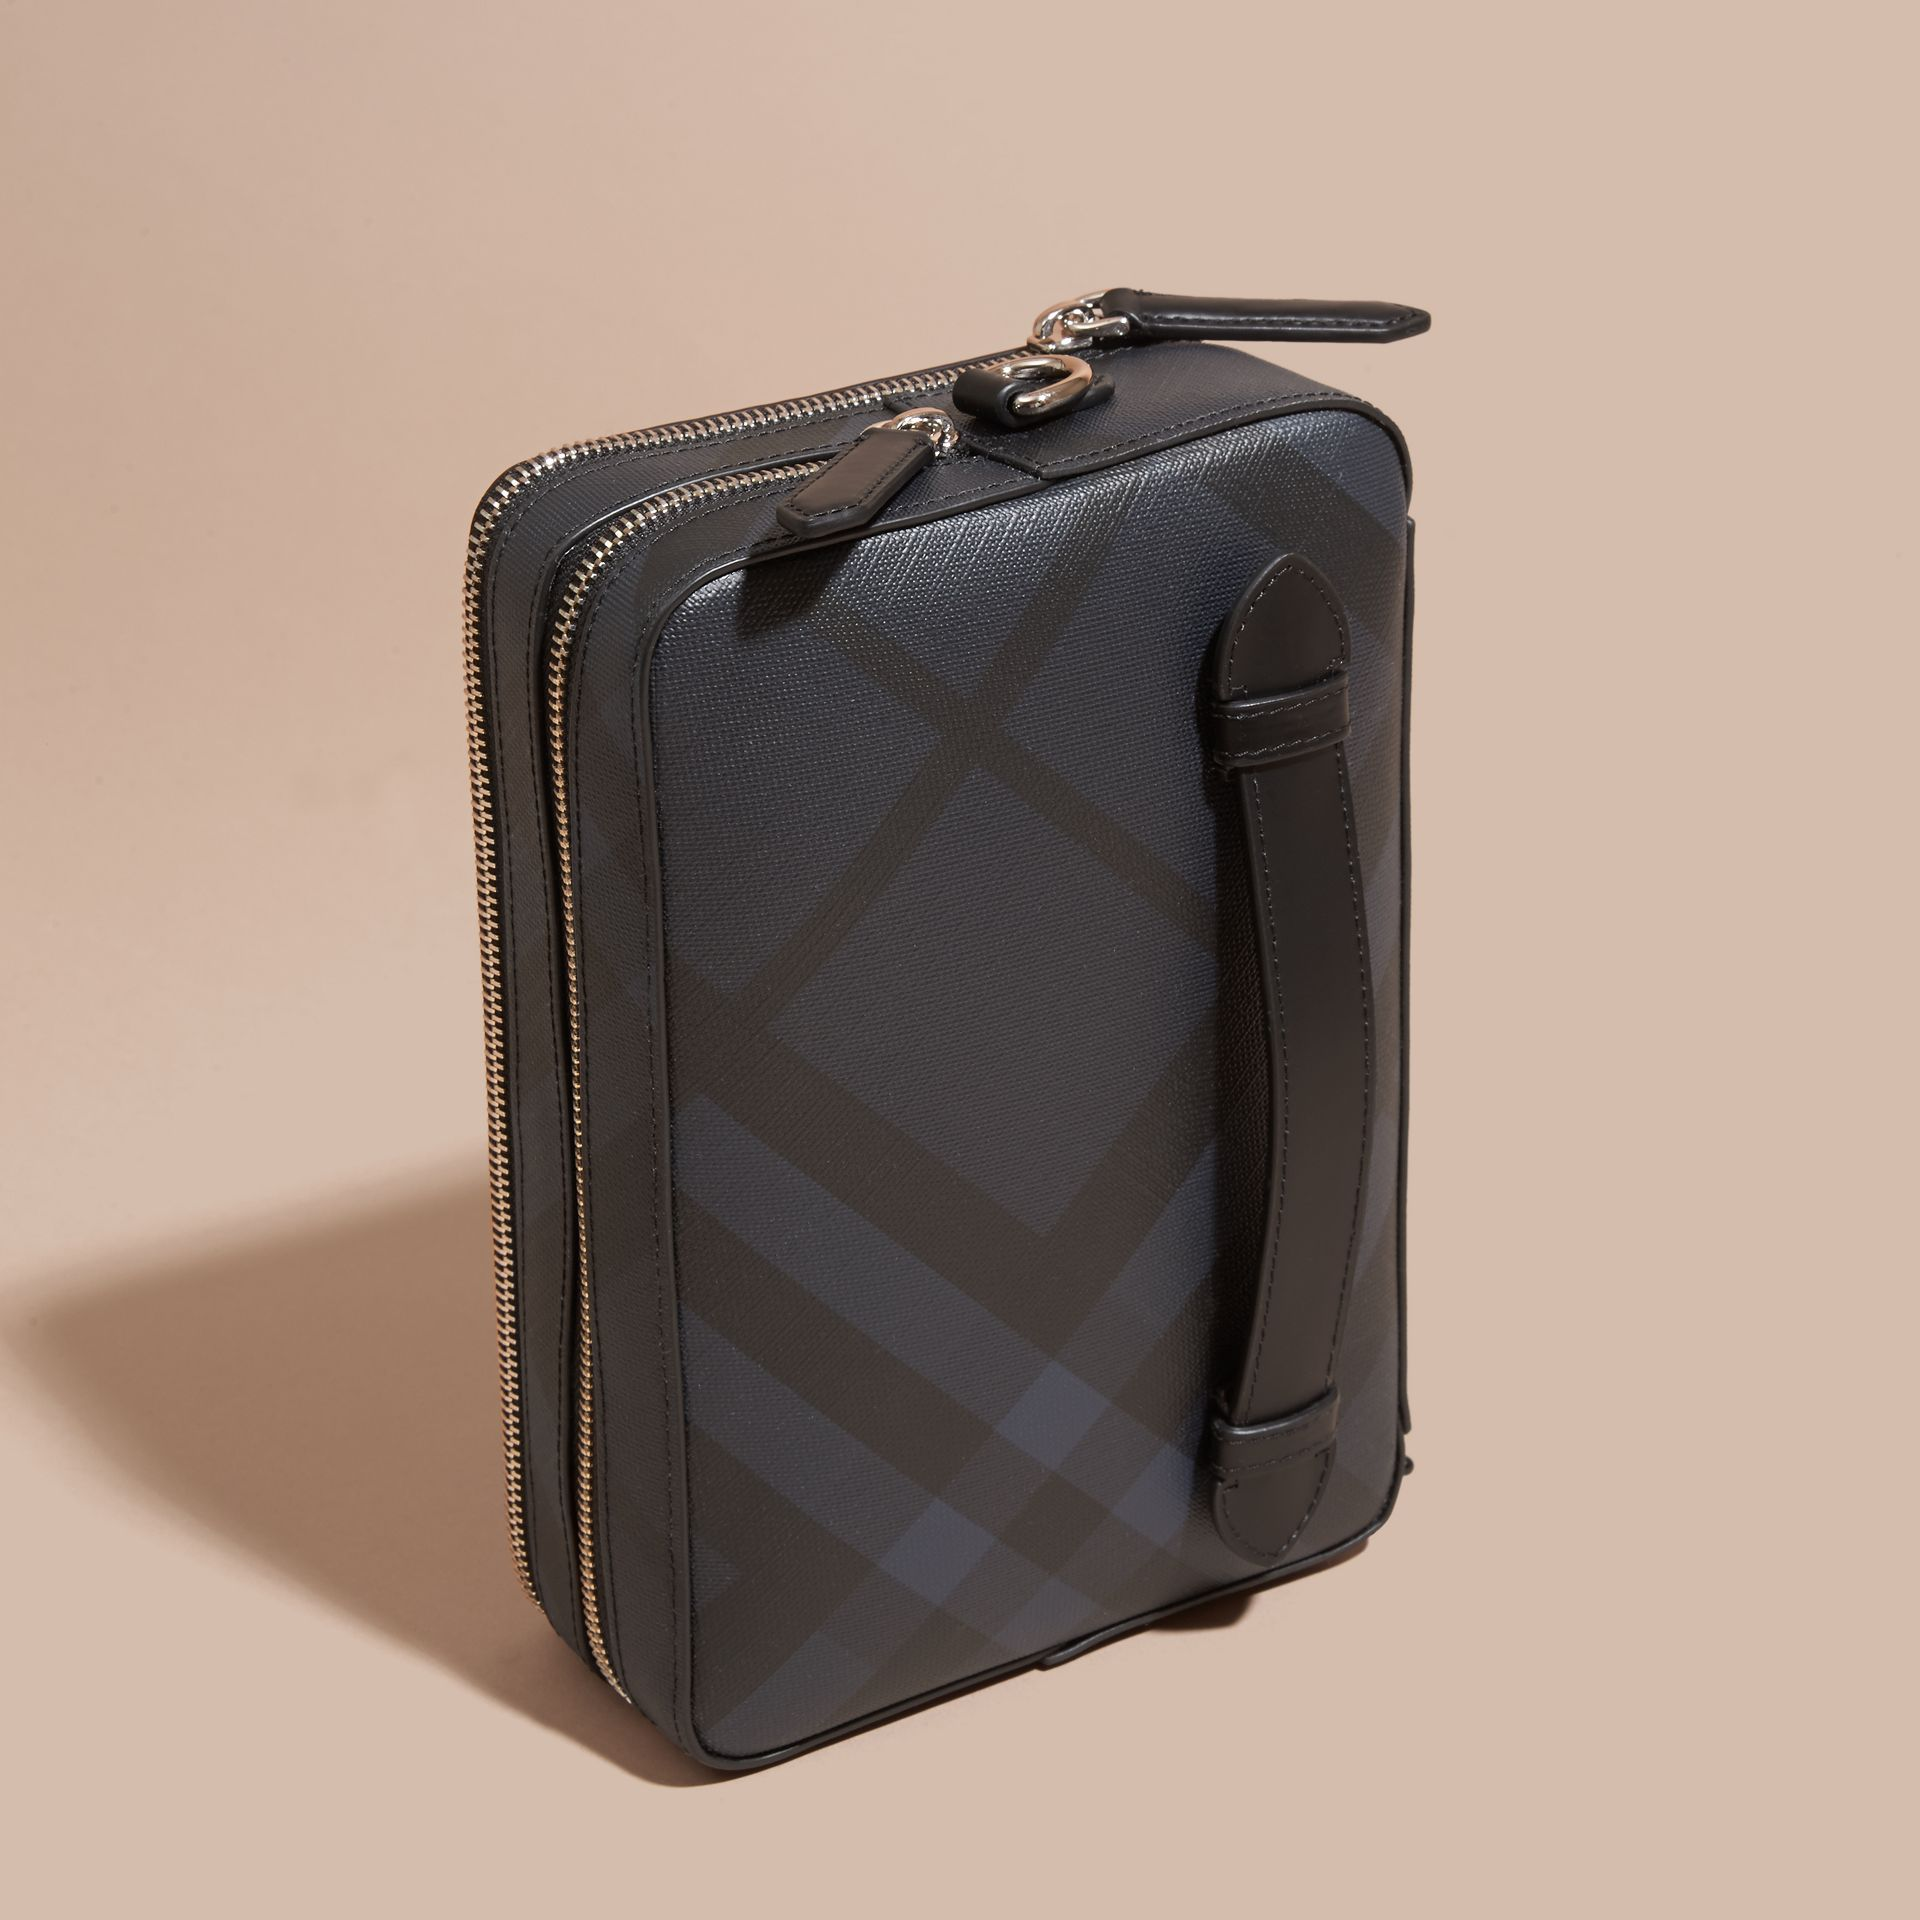 Leather-trimmed London Check Pouch in Navy/black - Men | Burberry Canada - gallery image 3